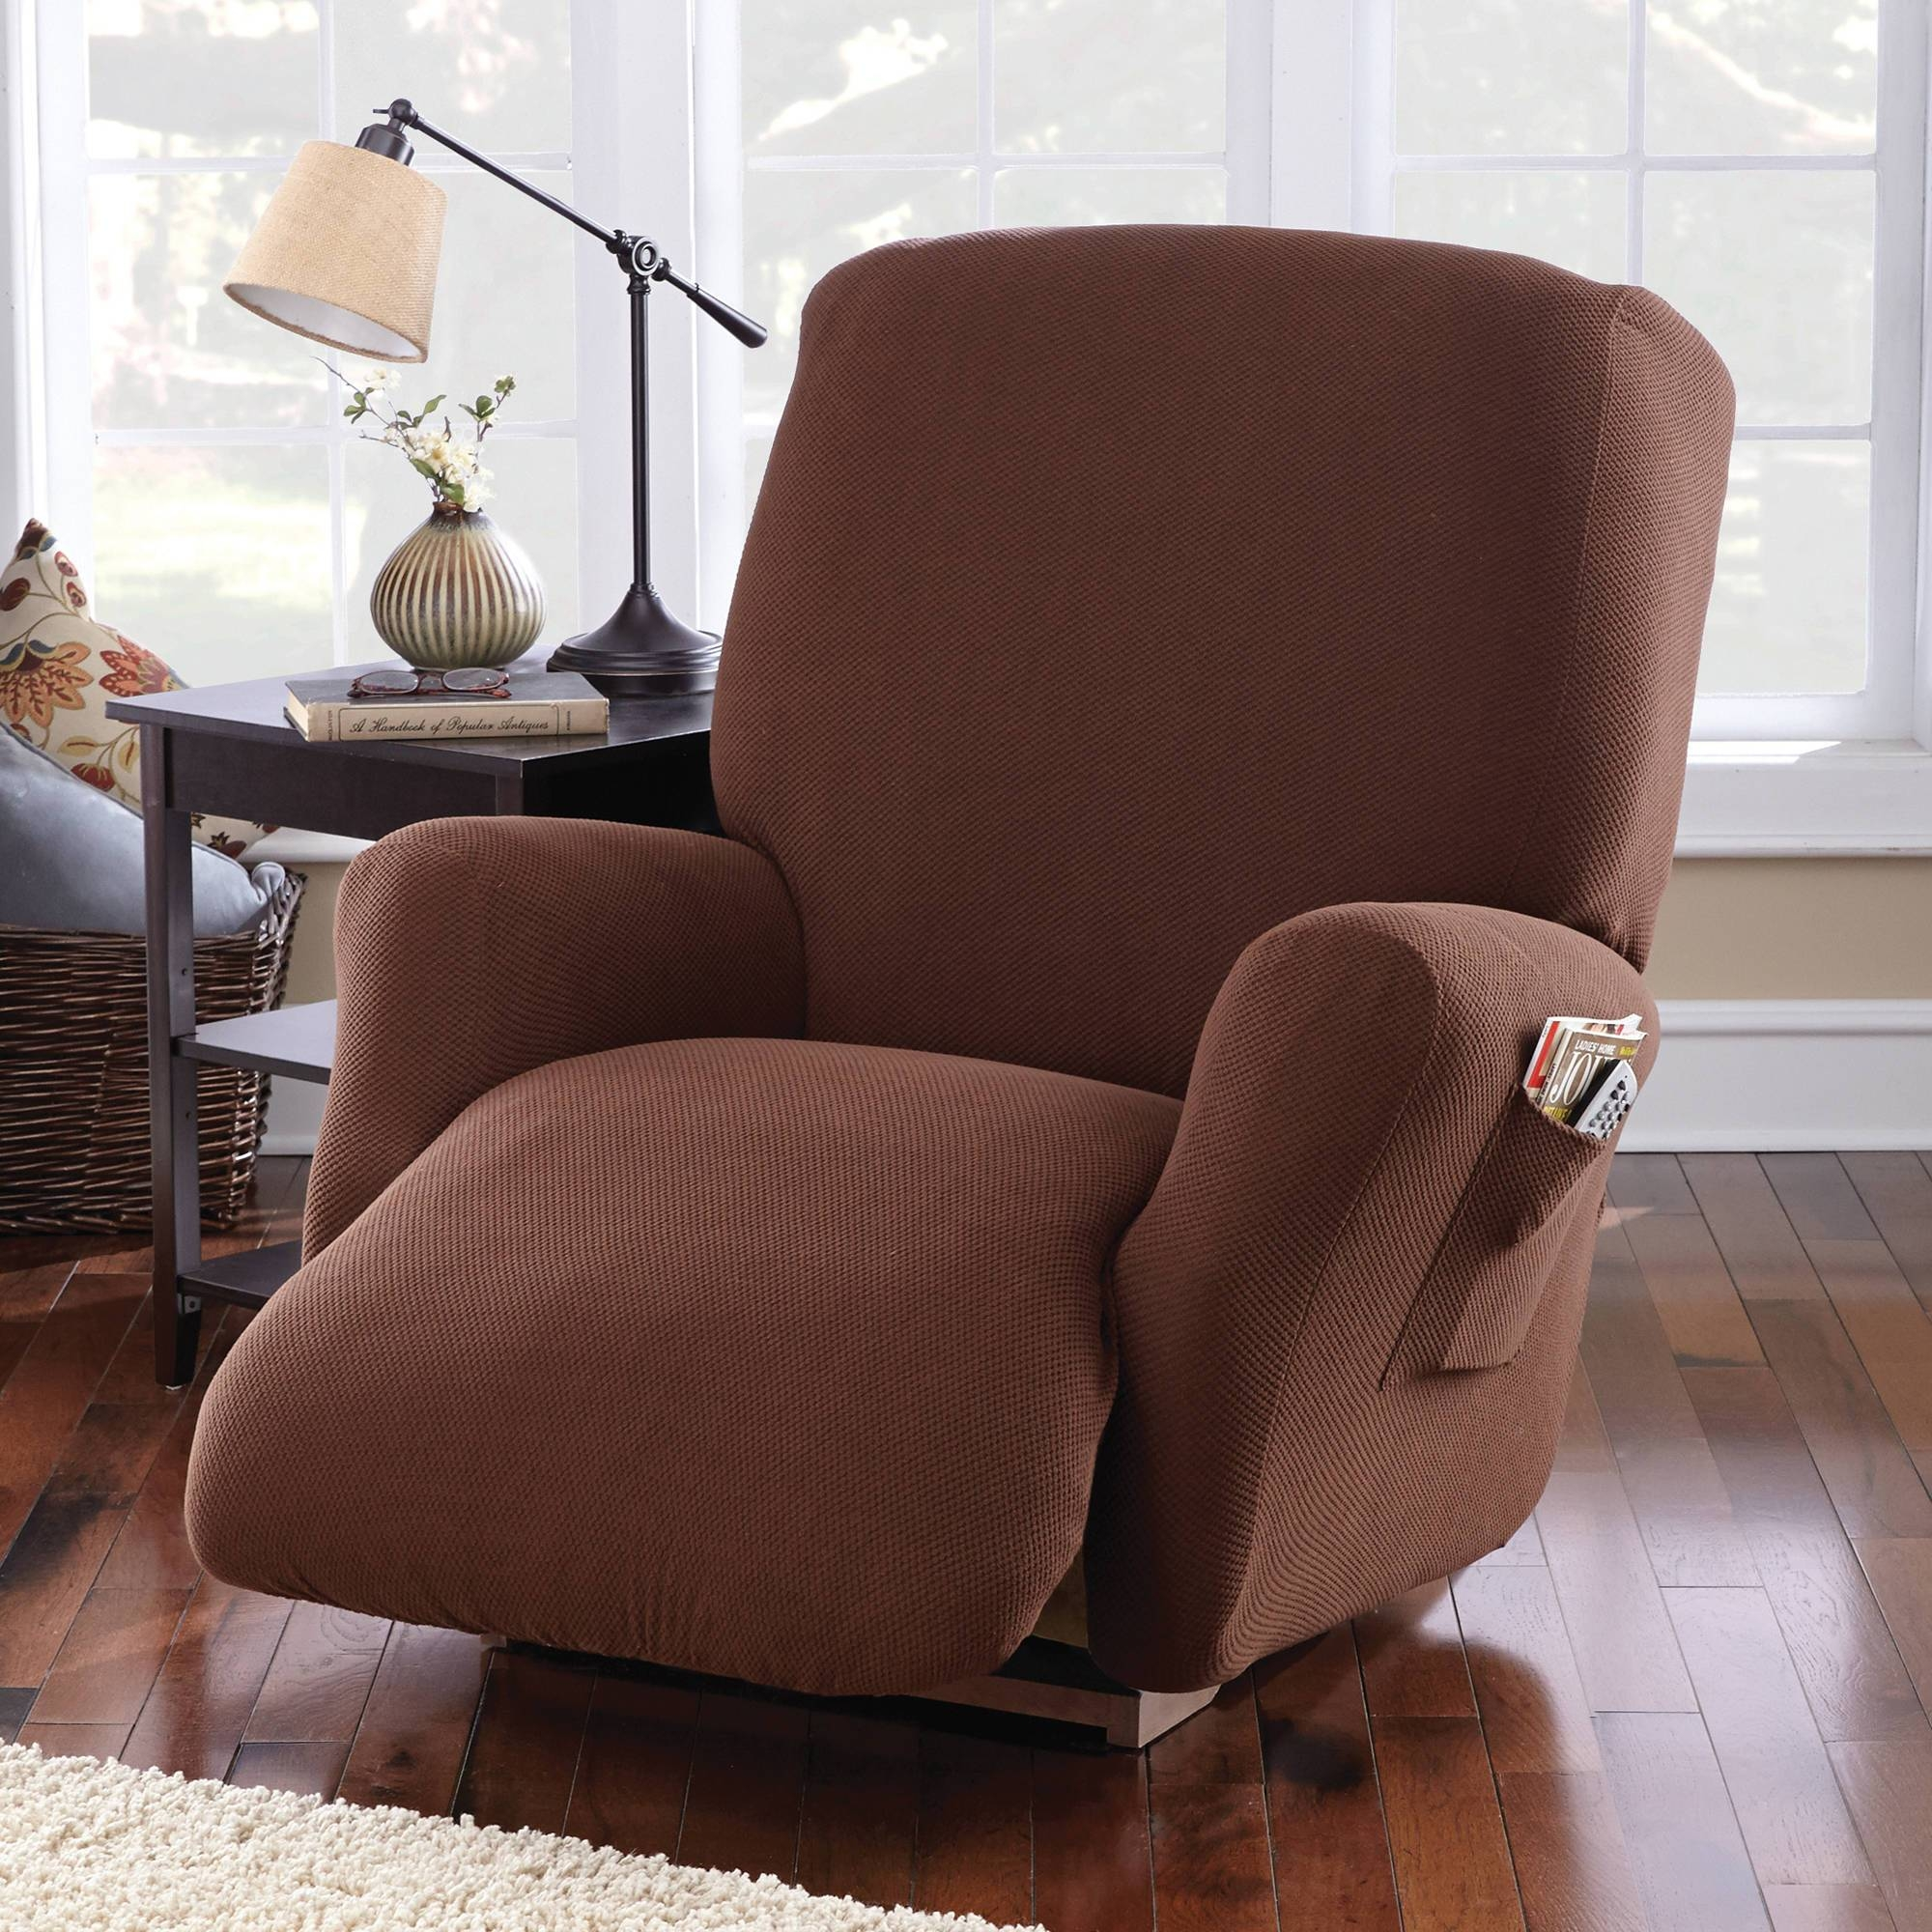 Mainstays Pixel Recliner Slipcover - Walmart intended for Slipcover For Reclining Sofas (Image 4 of 15)